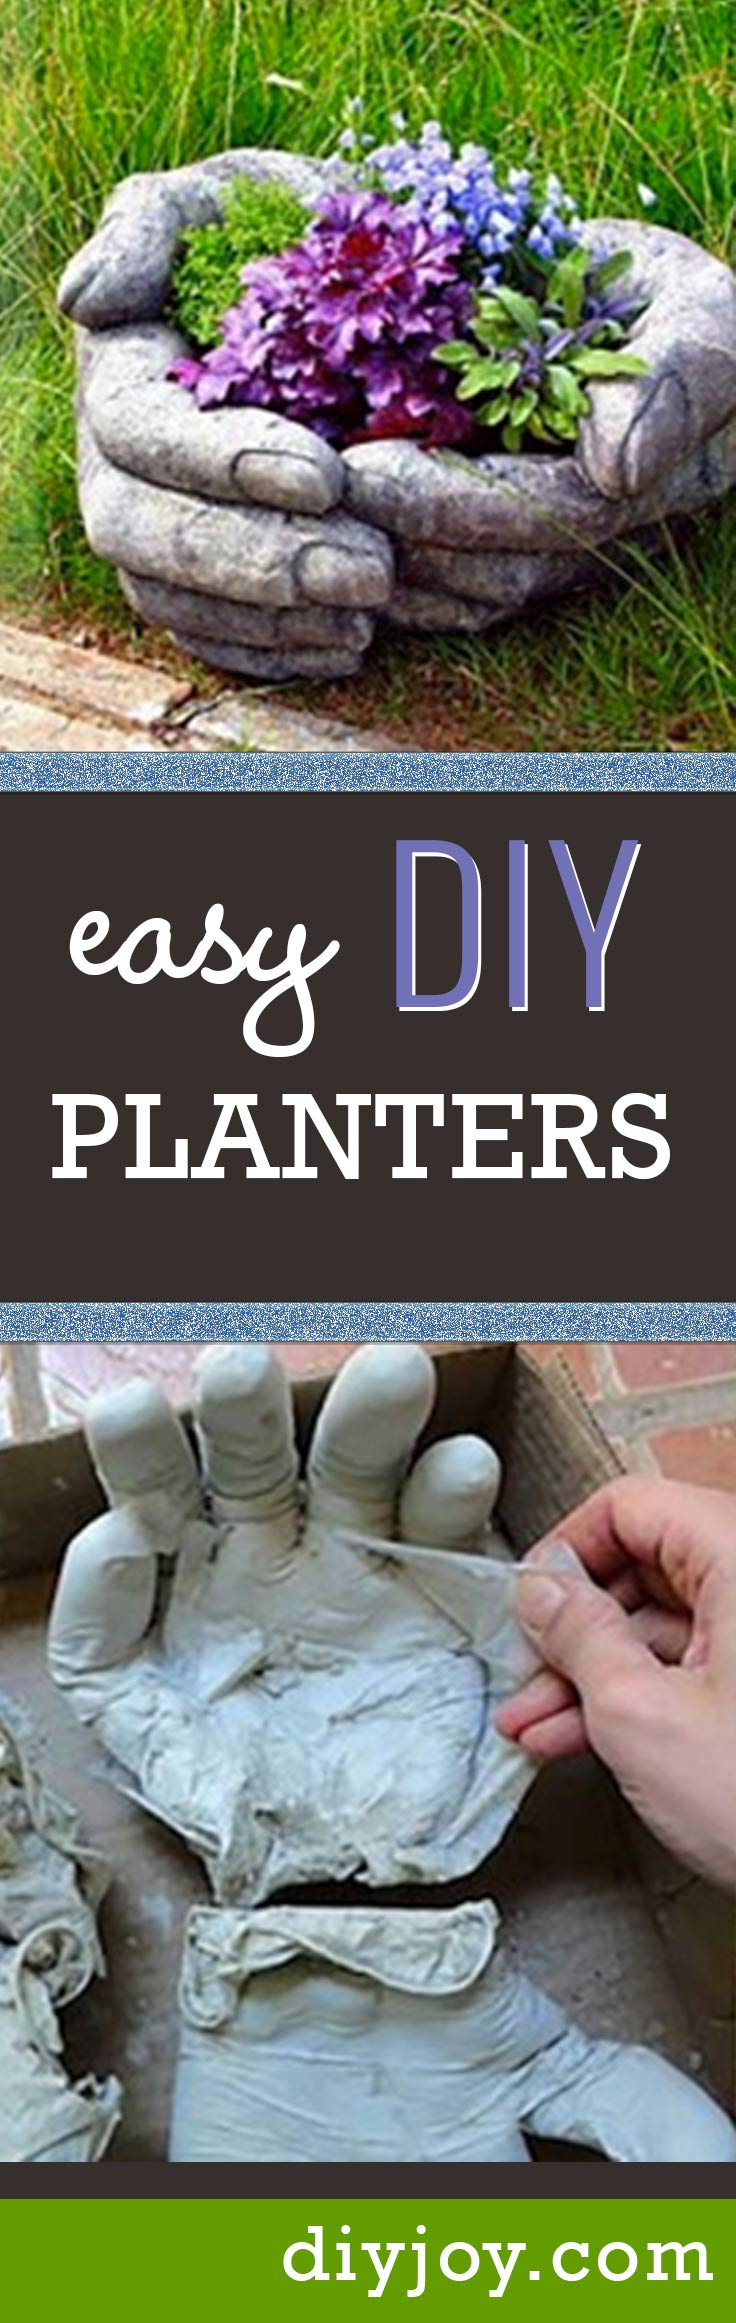 These diy concrete hand planters are easier to make than you think easy diy planters for cool do it yourself gardening idea concrete pots in hand shade solutioingenieria